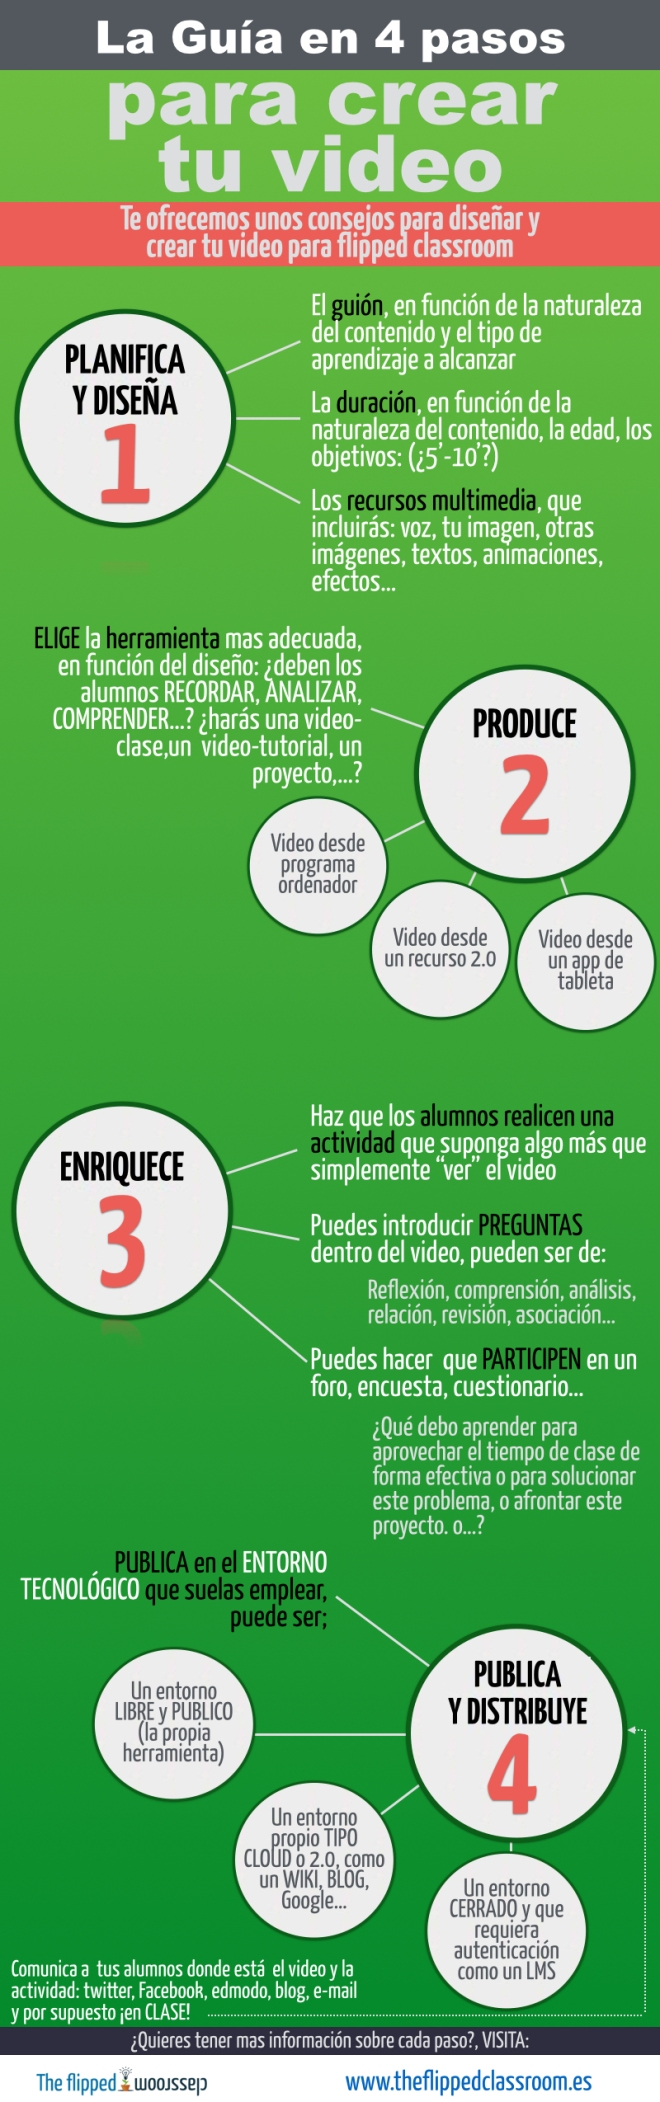 video-flipped-4-pasos-infografia